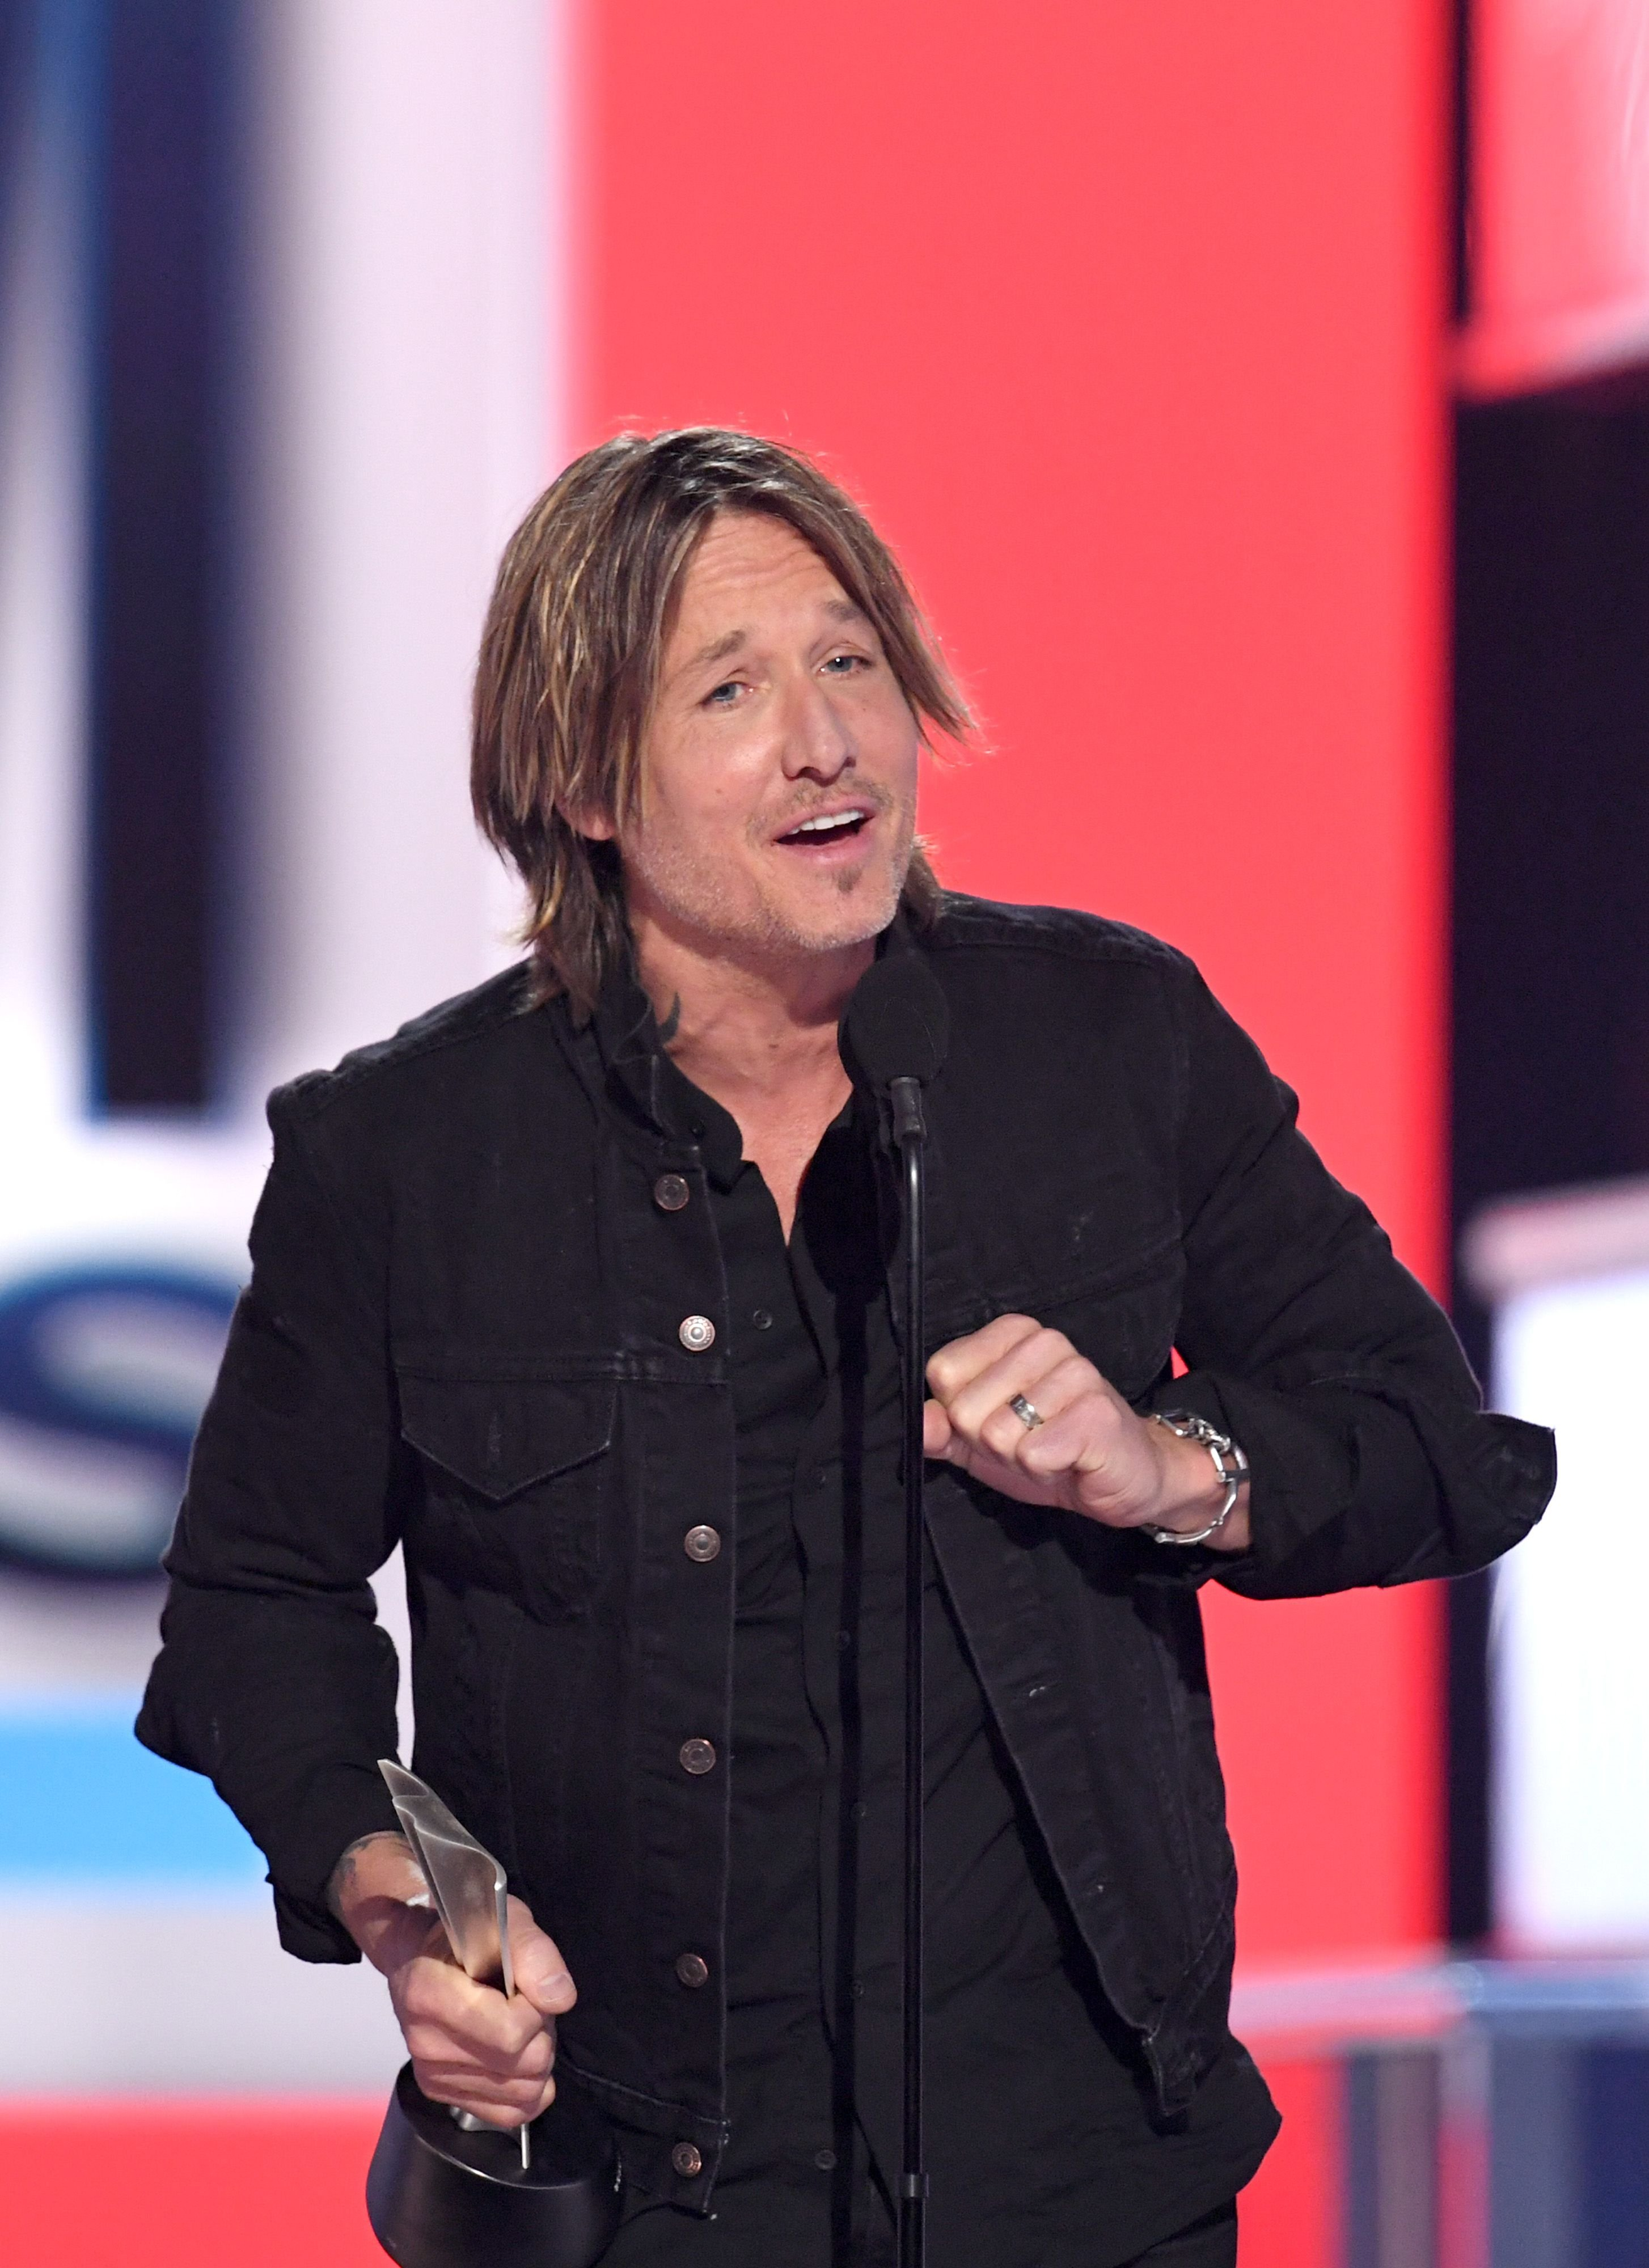 """Keith Urban accepting the """"Entertainer of the Year"""" award at the 54th Academy Of Country Music Awards in Las Vegas on April 7, 2019 